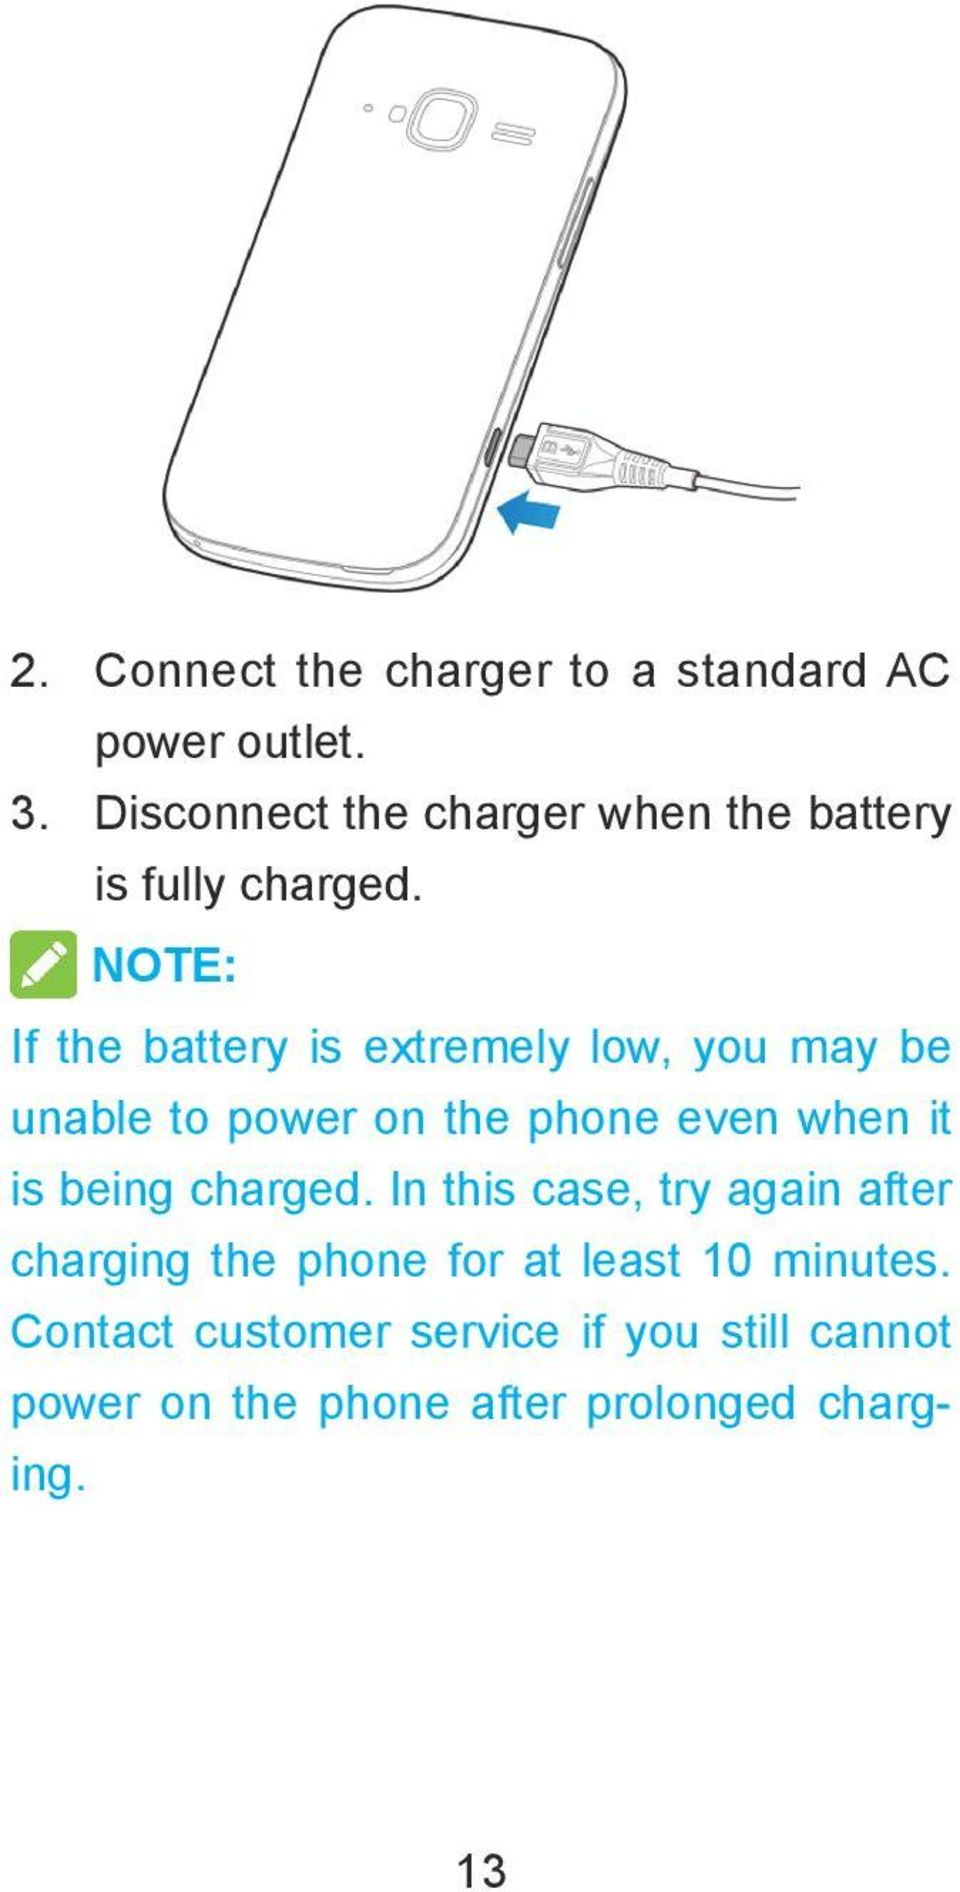 NOTE: If the battery is extremely low, you may be unable to power on the phone even when it is